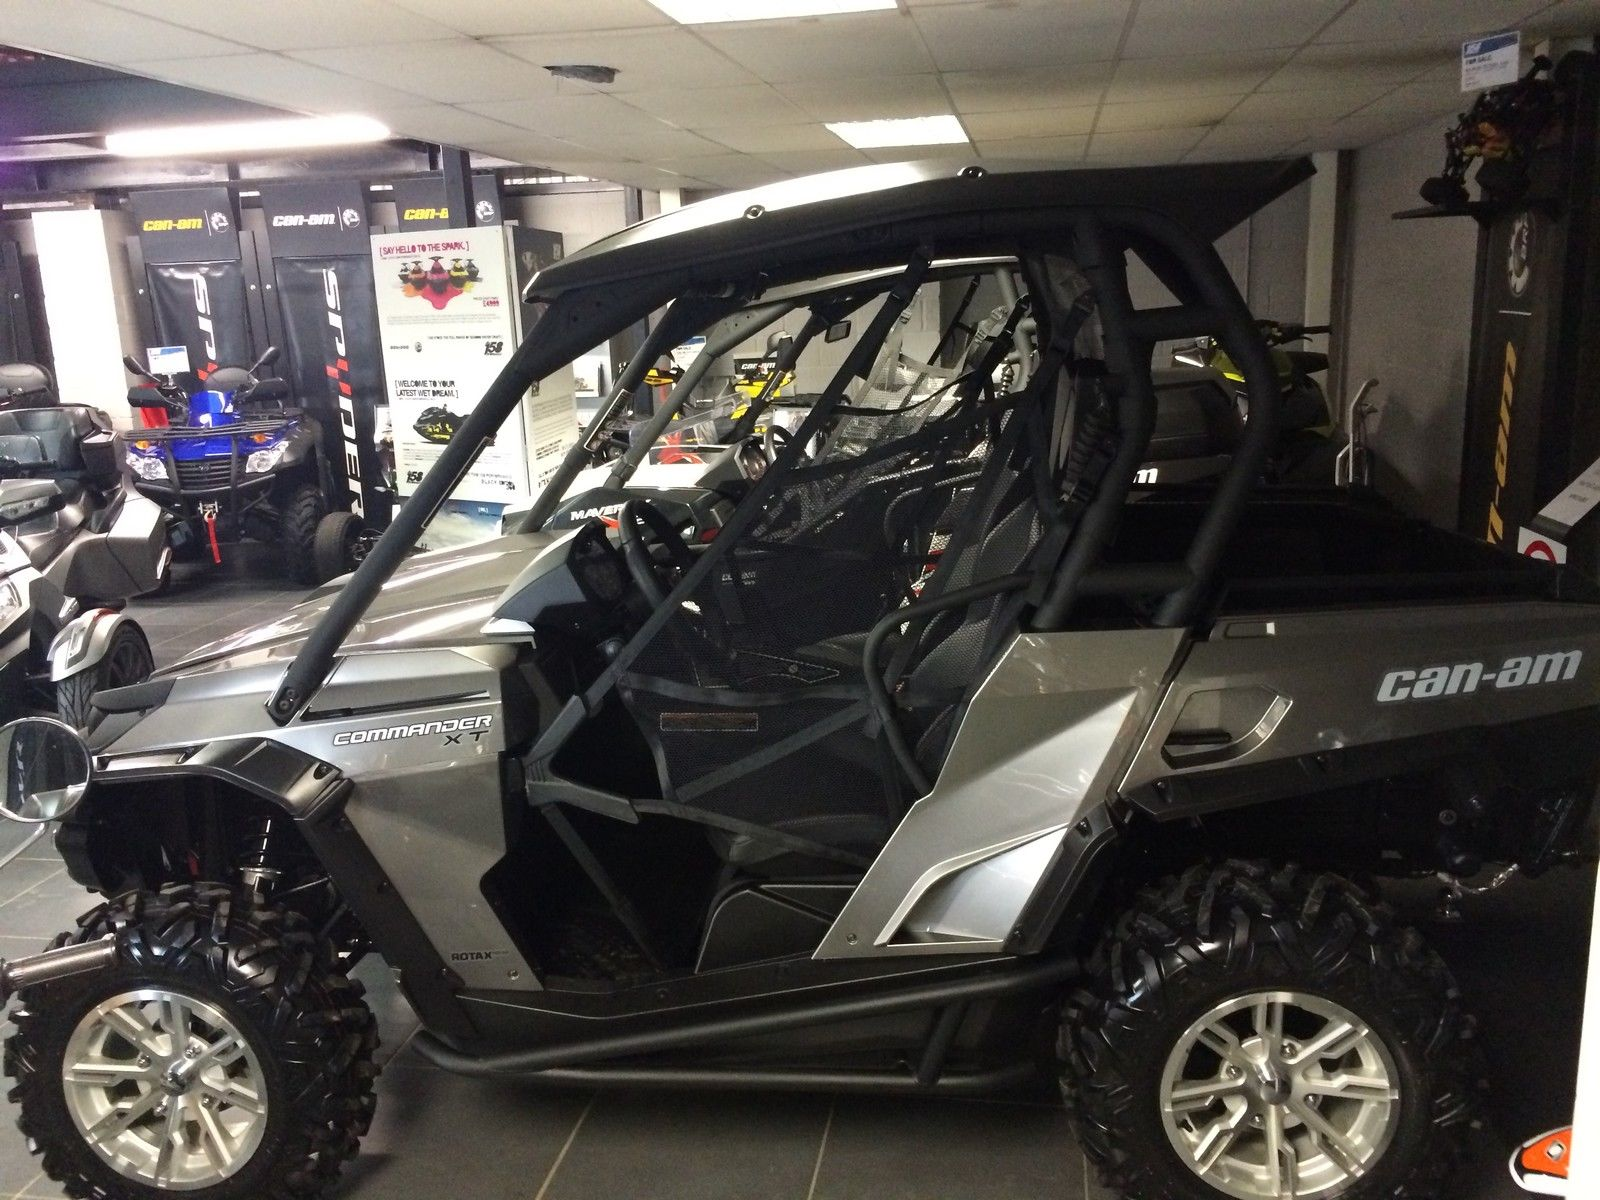 can am commander xt 1000cc 2014 side by side buggy 32 hours use mint. Black Bedroom Furniture Sets. Home Design Ideas